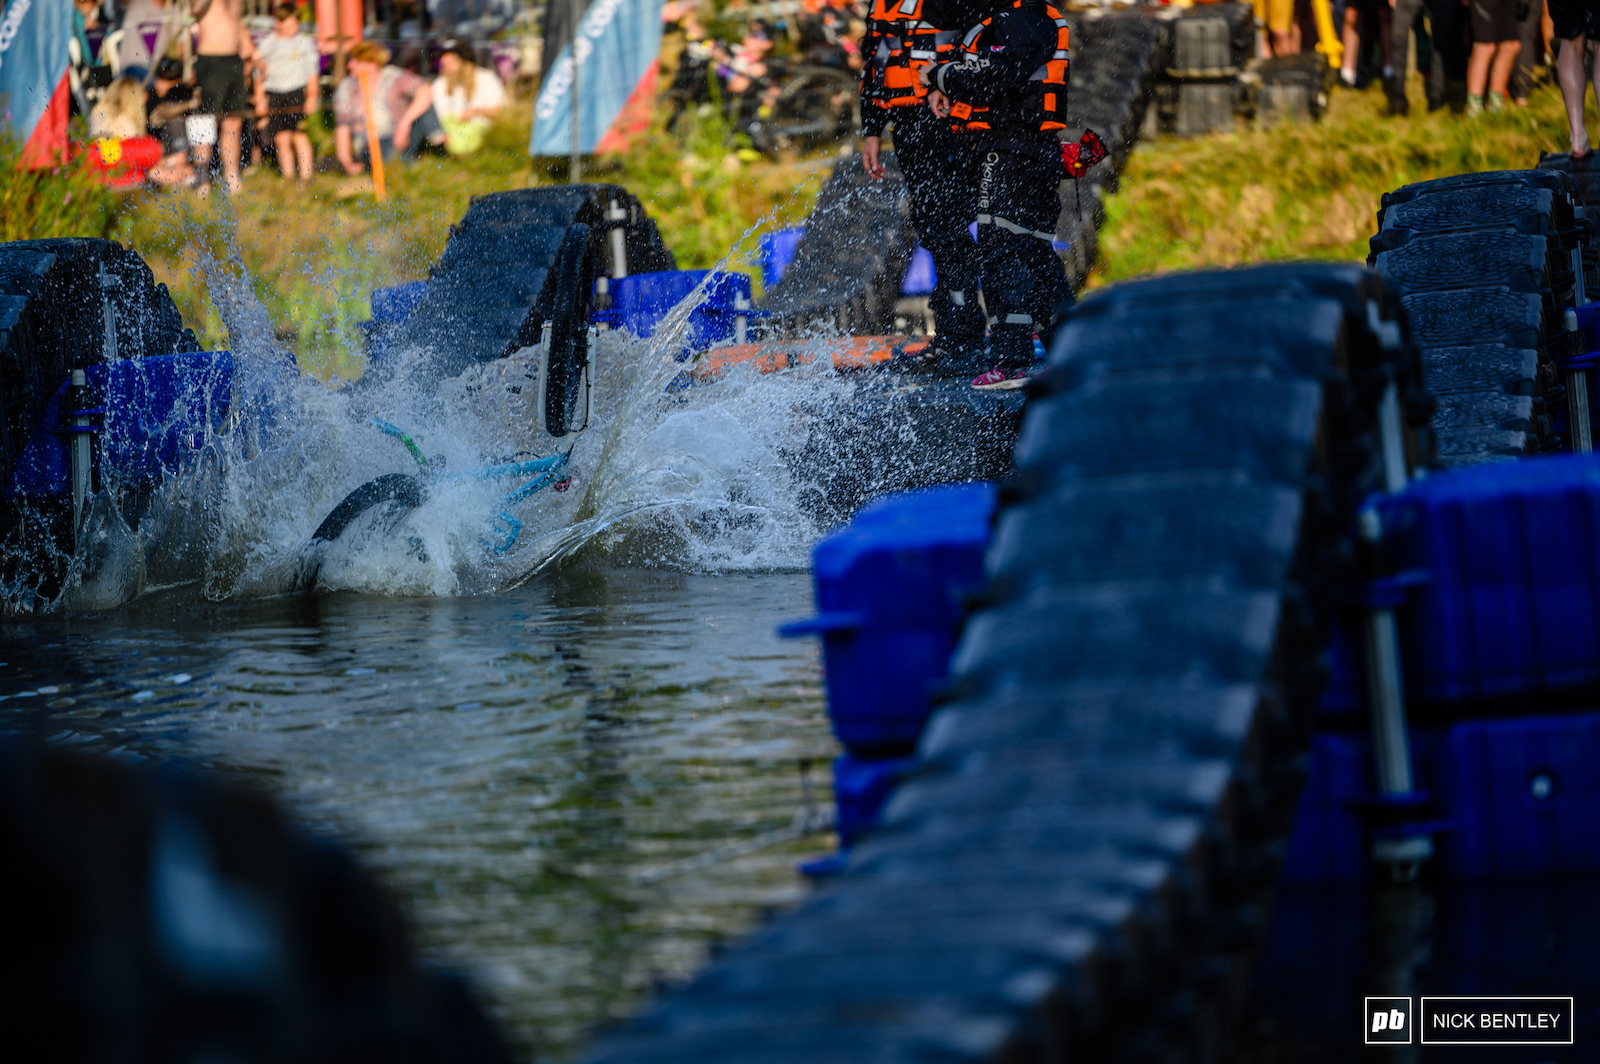 The competition for the biggest splash was as tightly fought as the Lake Ride Race itself